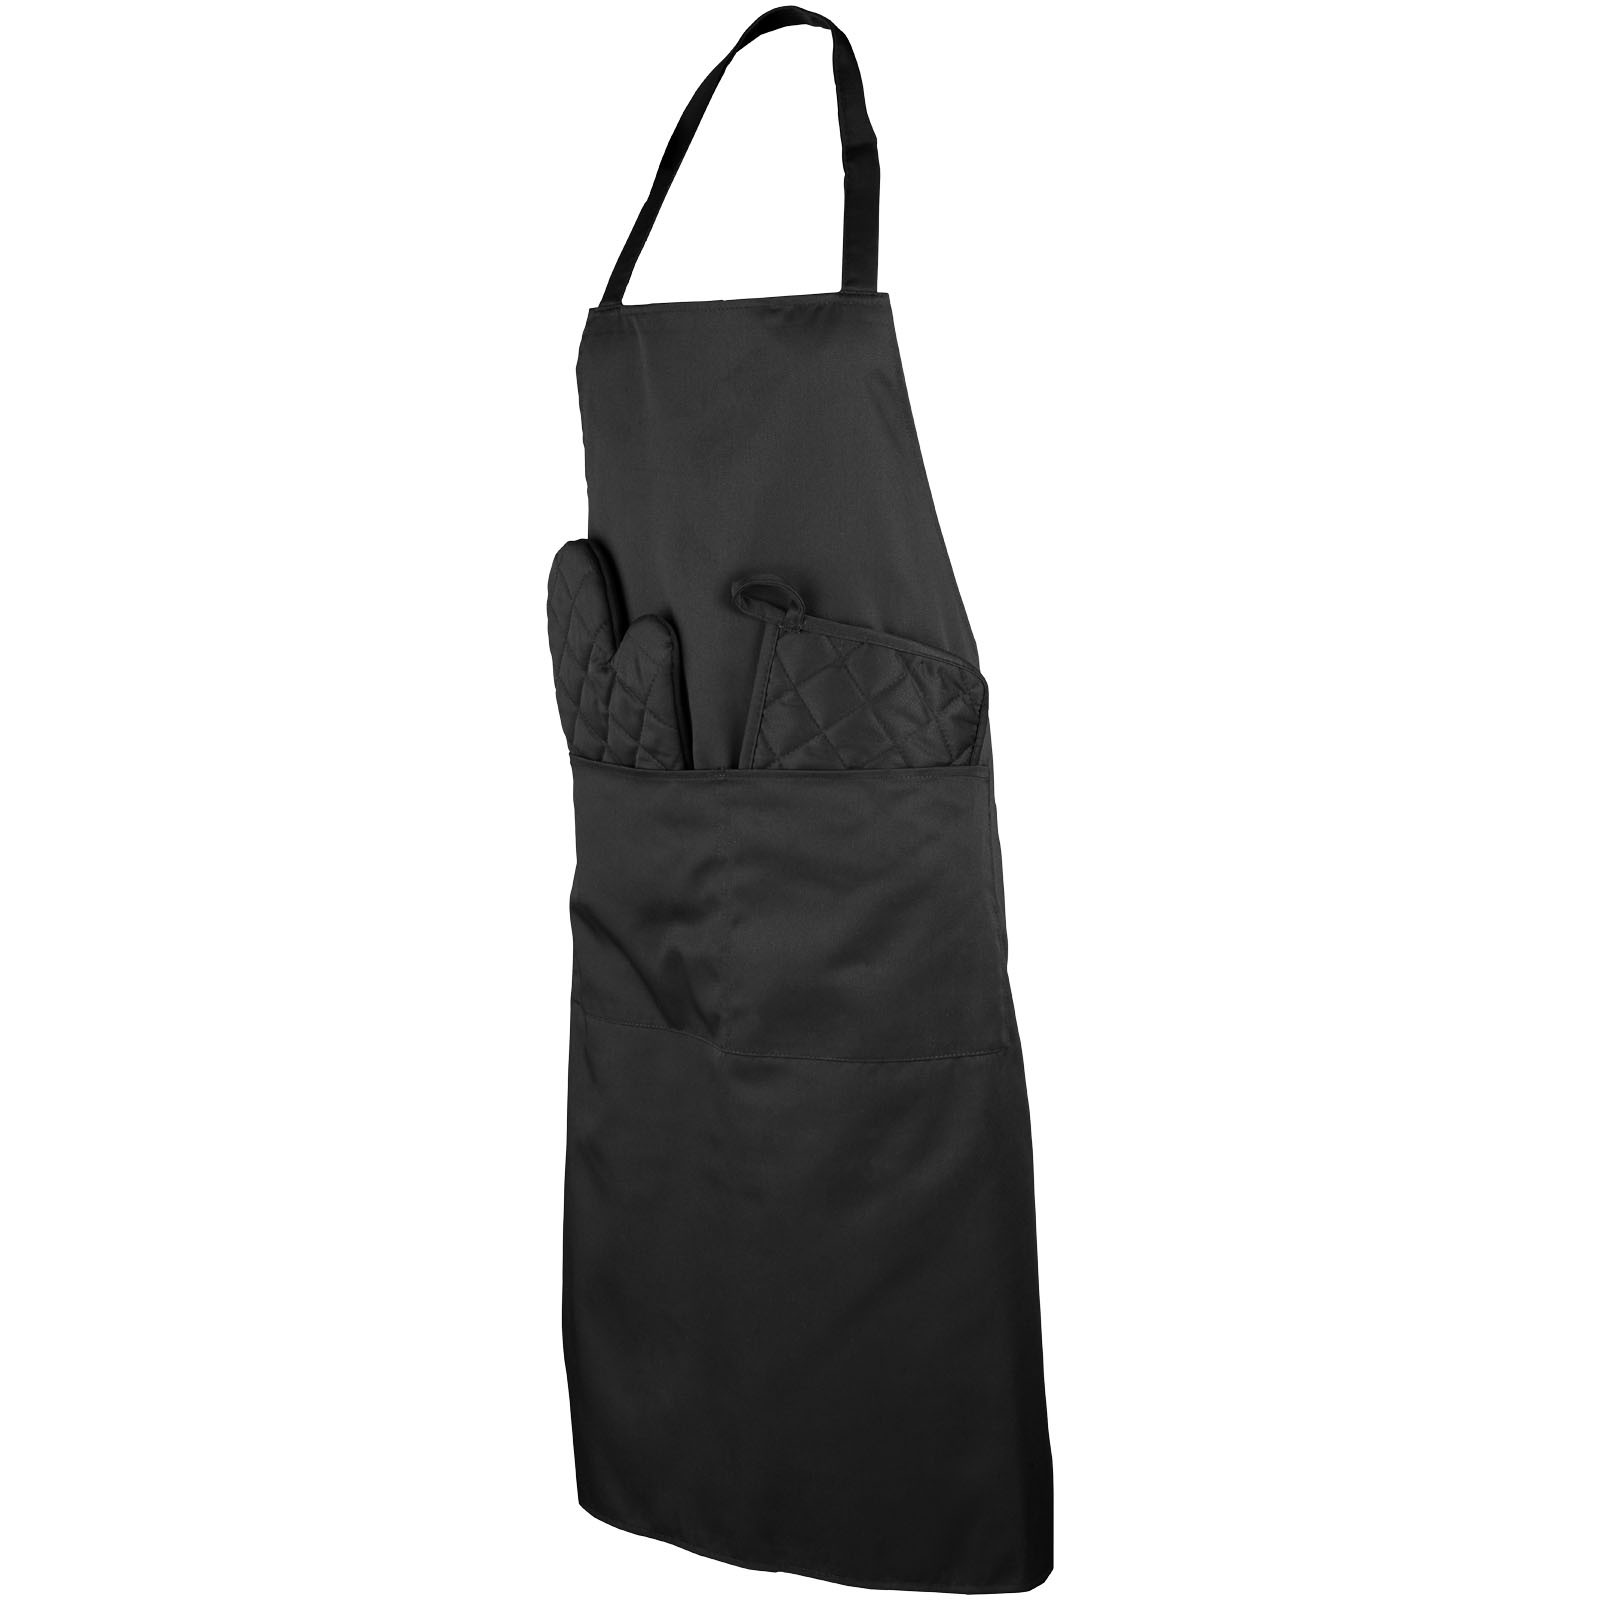 Dila 4-piece kitchen set in a pouch - Solid black